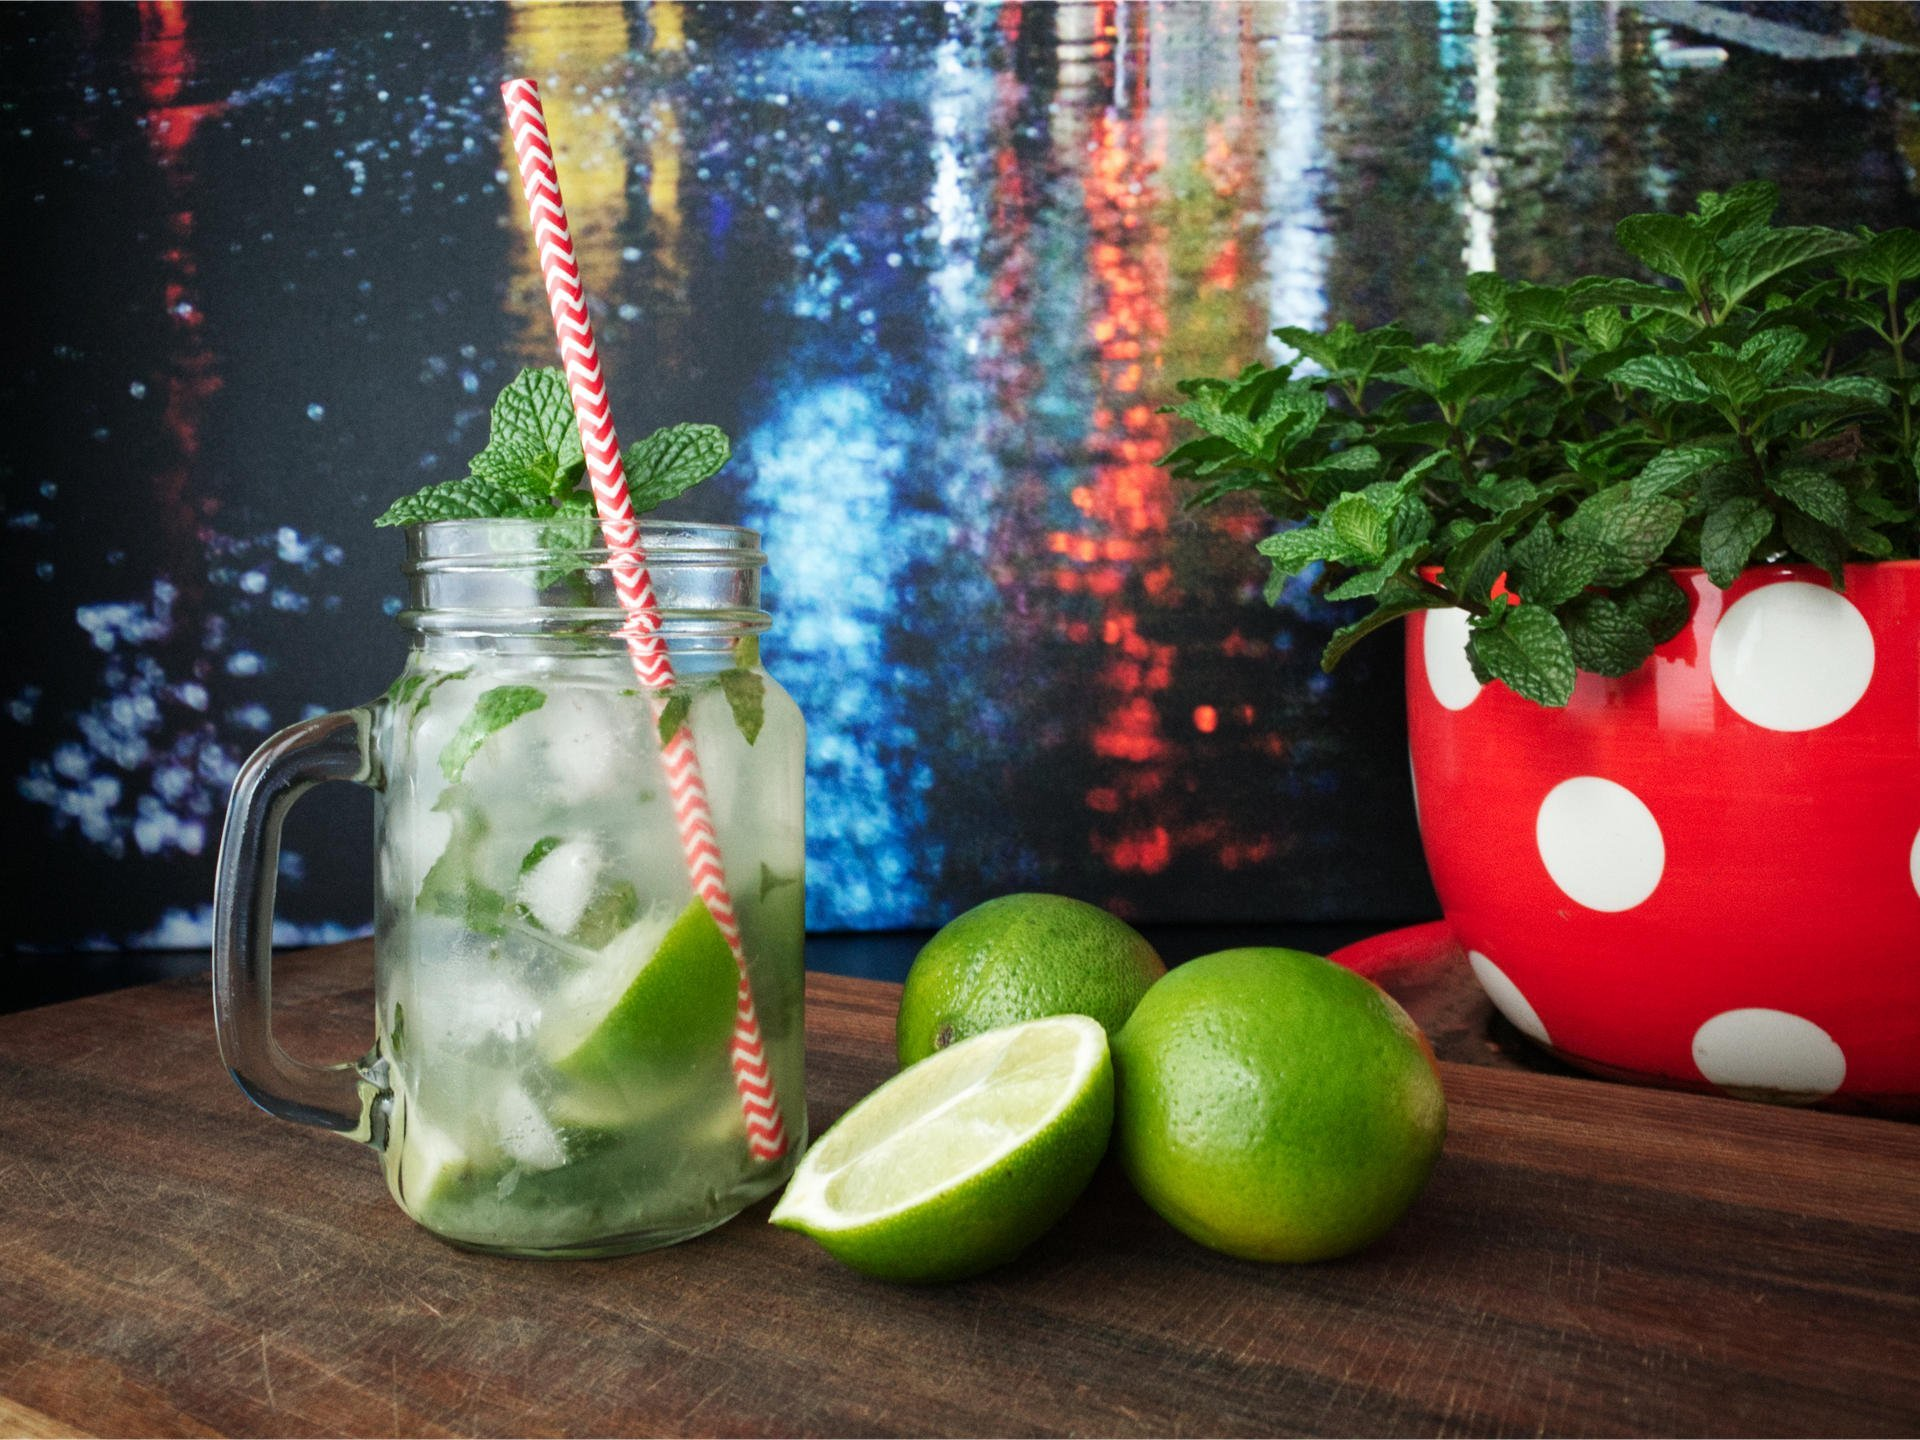 Mojito cocktail with limes and fresh mint